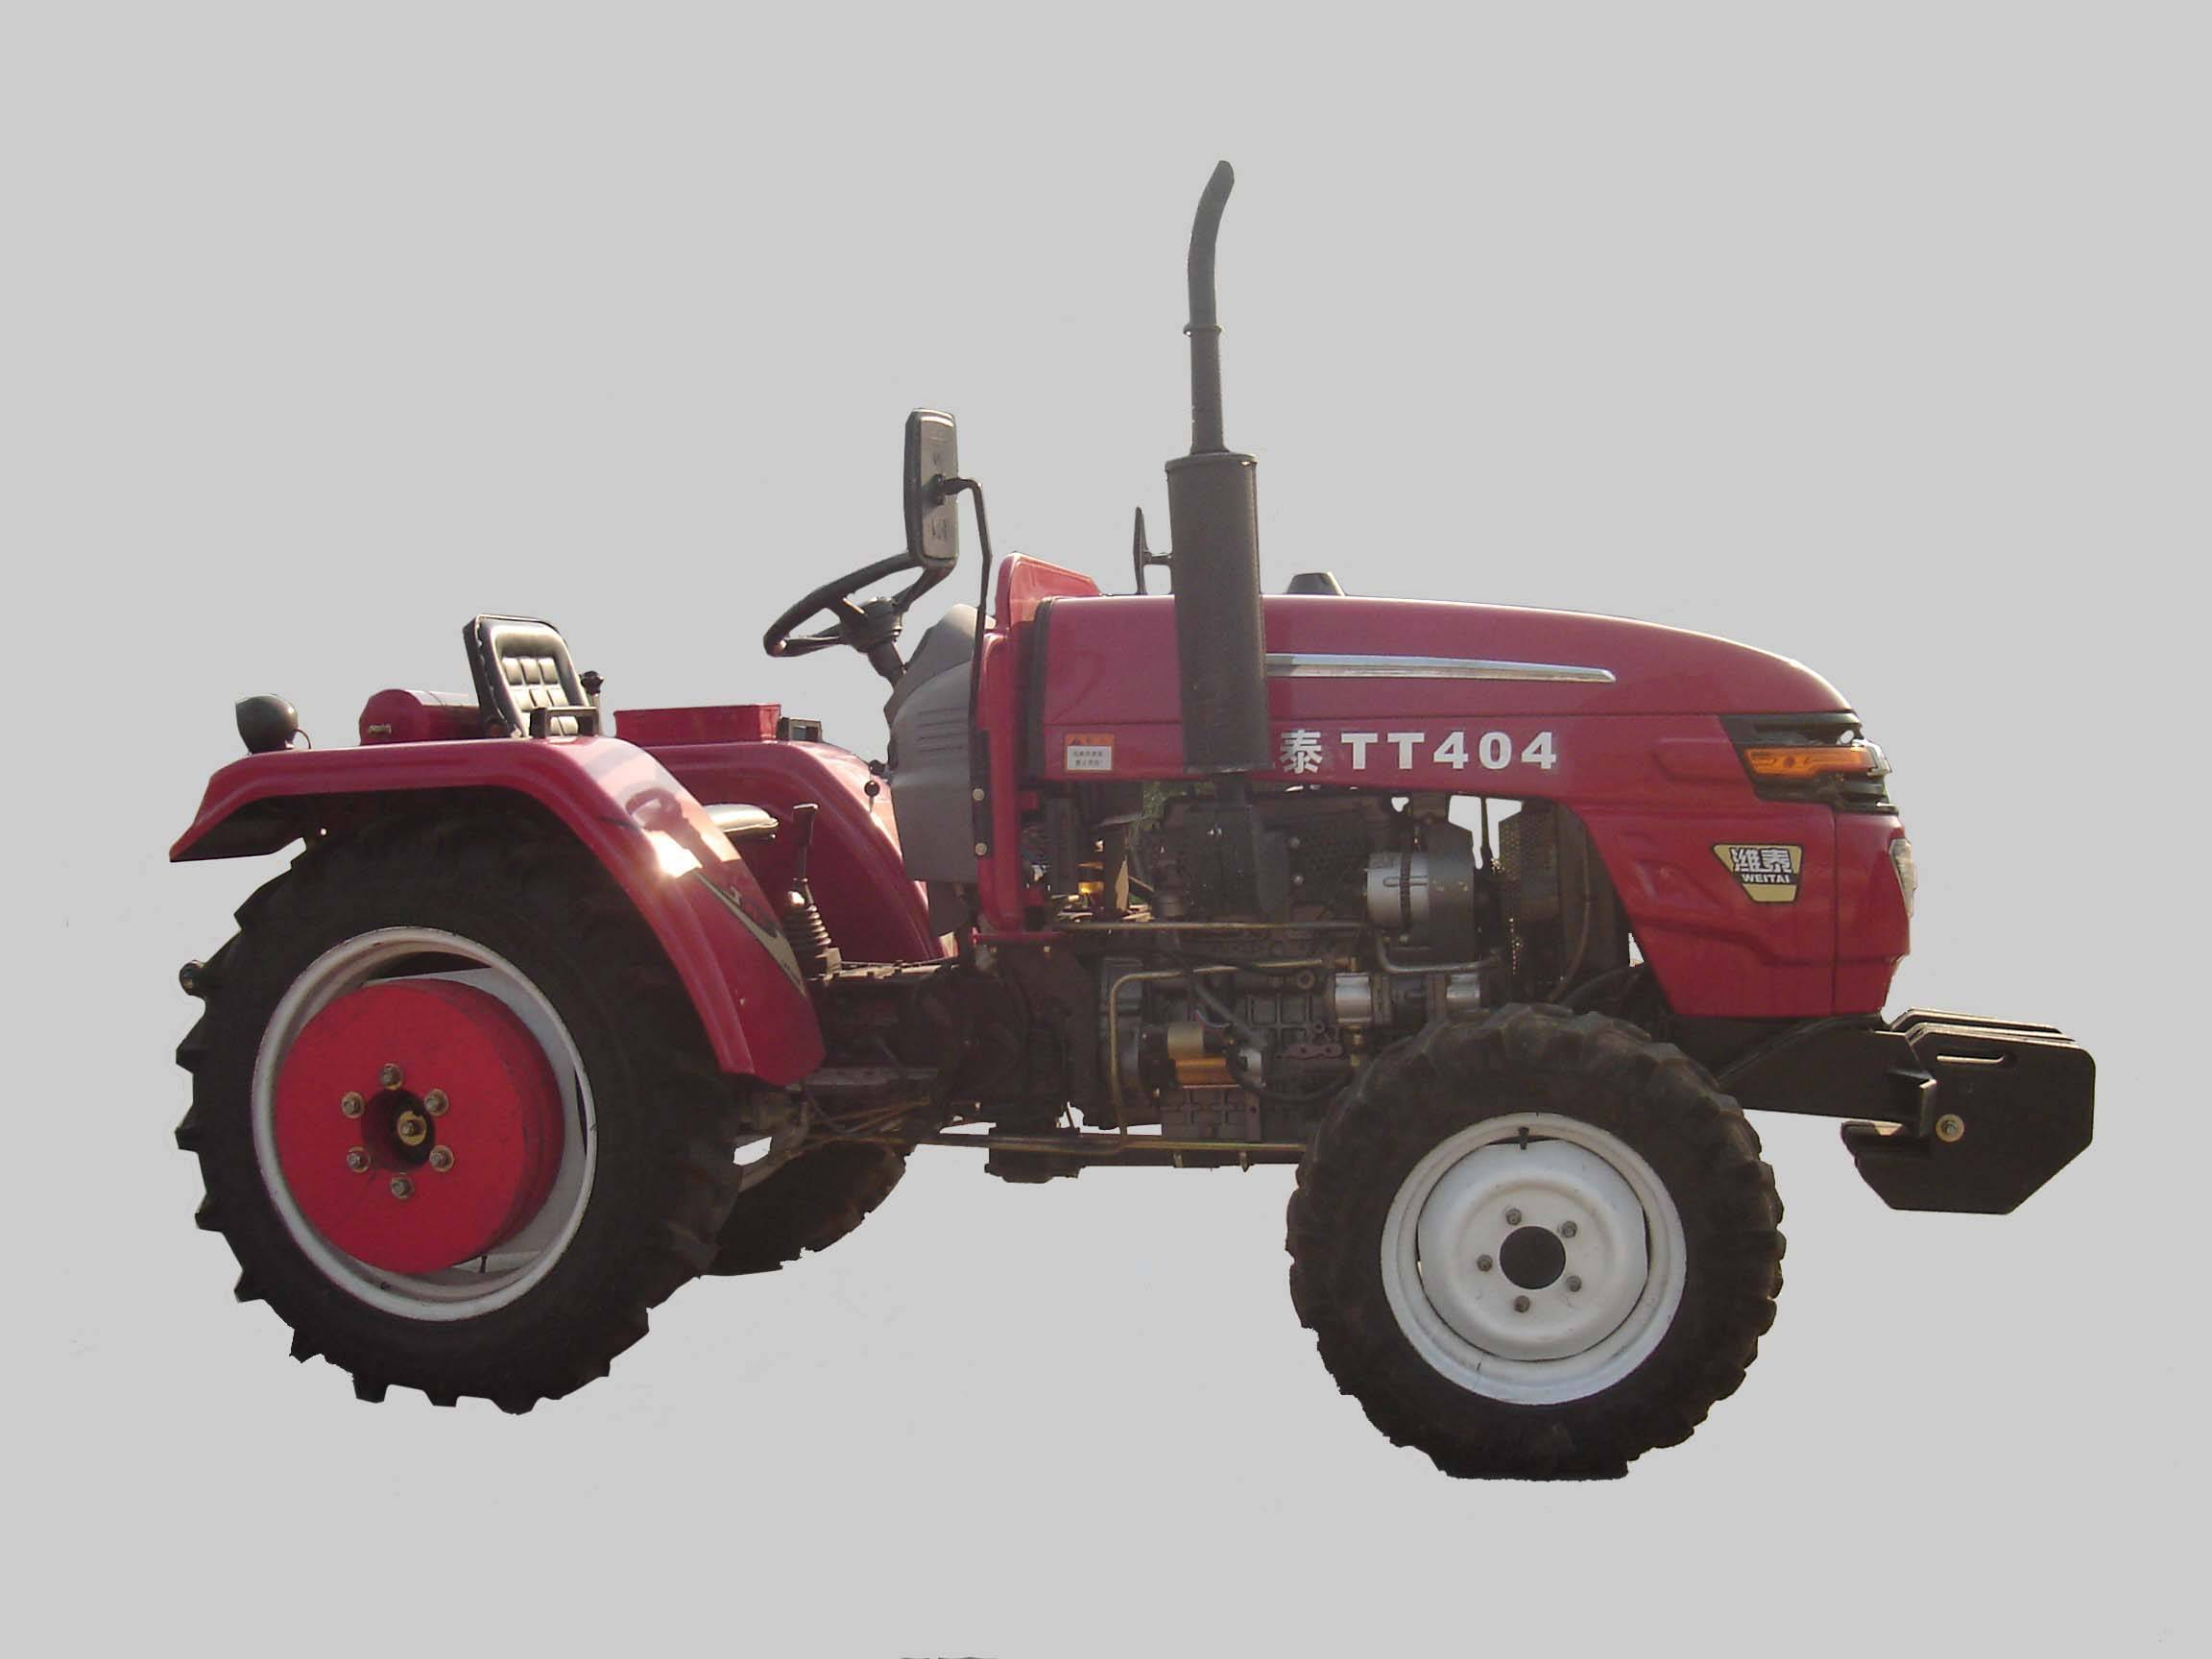 New four cylinder 40HP 4WD Tractor TY404